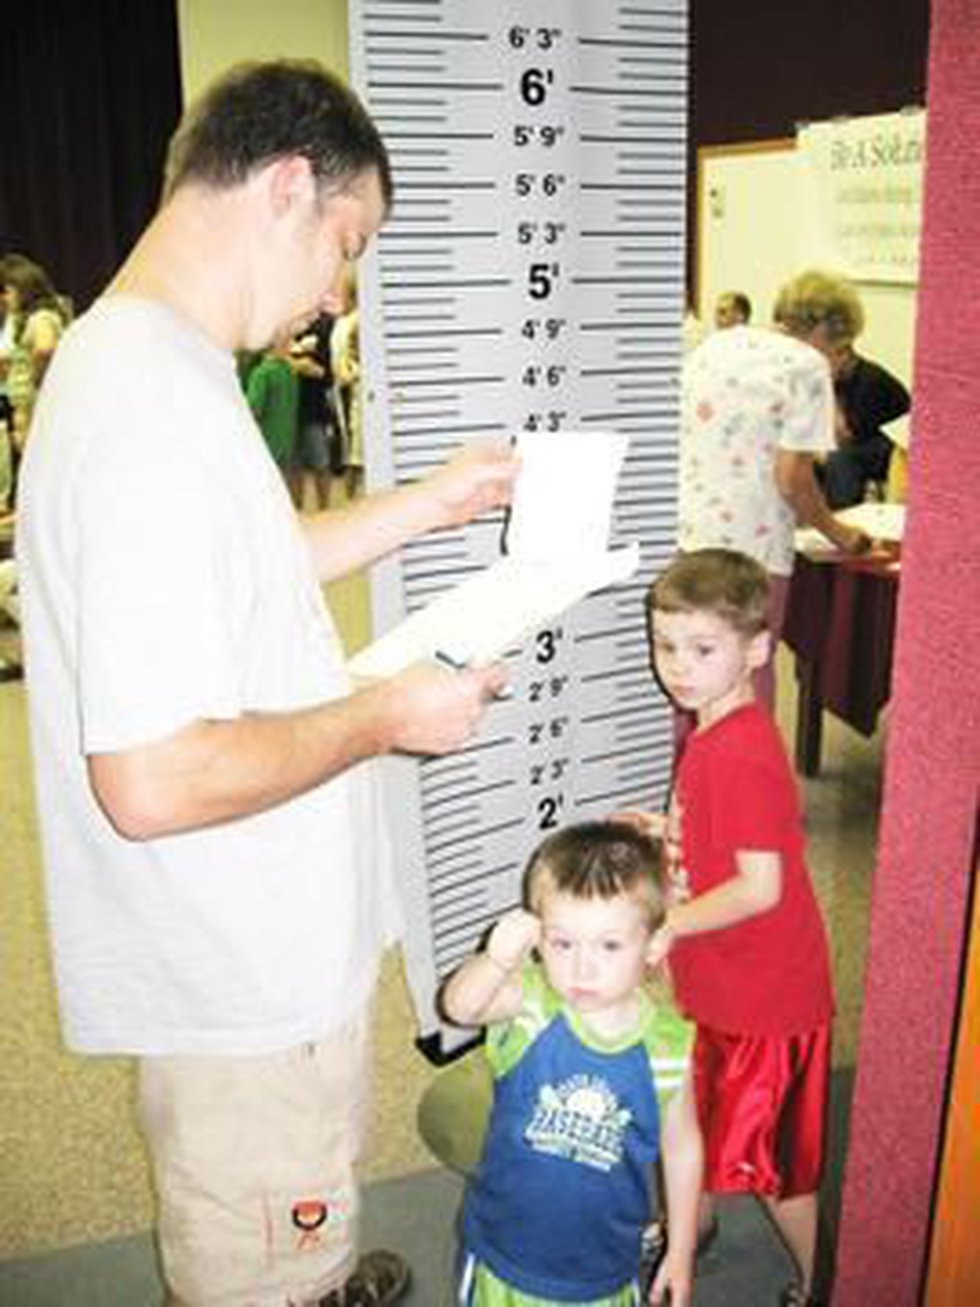 Dale Butler and his sons in 2006 (courtesy Amy Lacey)